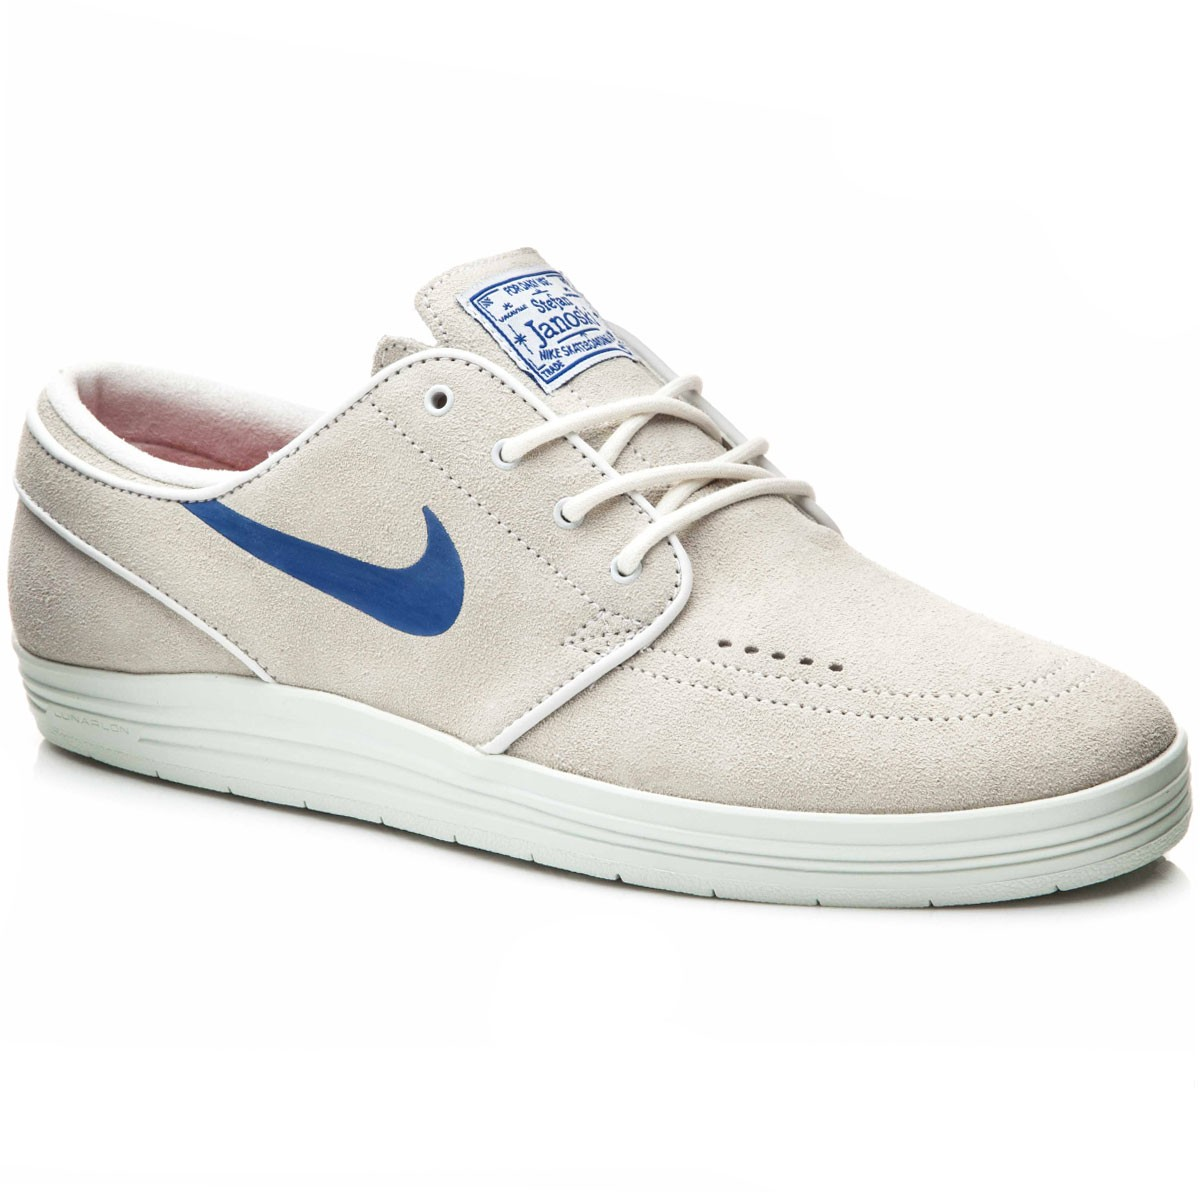 low cost 2b45a 262e9 Nike Lunar Stefan Janoski Shoes